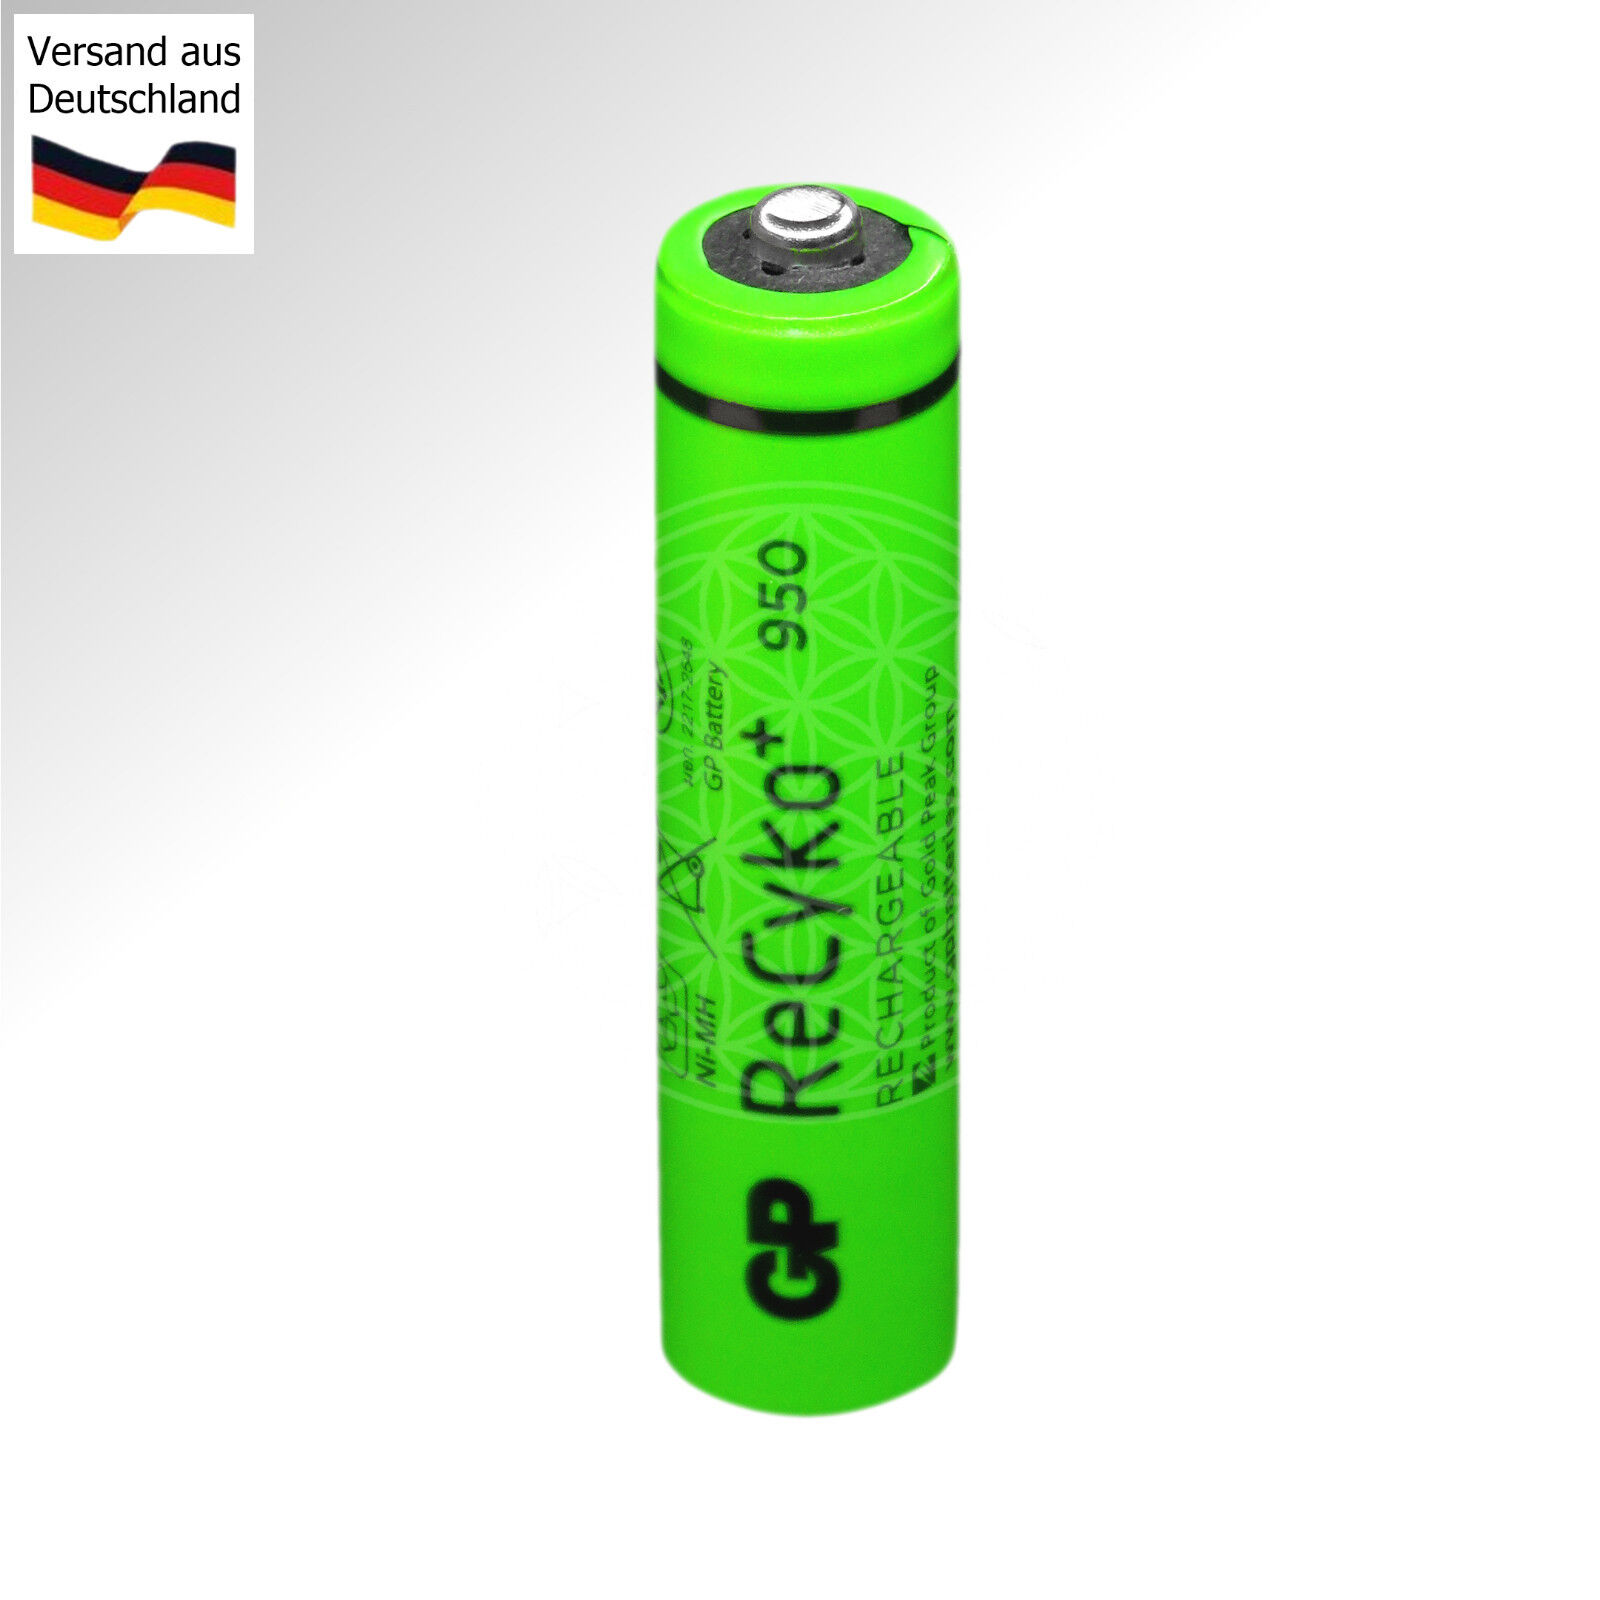 GP Recyko+ Rechargeable Nickel Metallhydrid Accu Ni-MH 1,2 Volt 1.2V 950mAh 2000